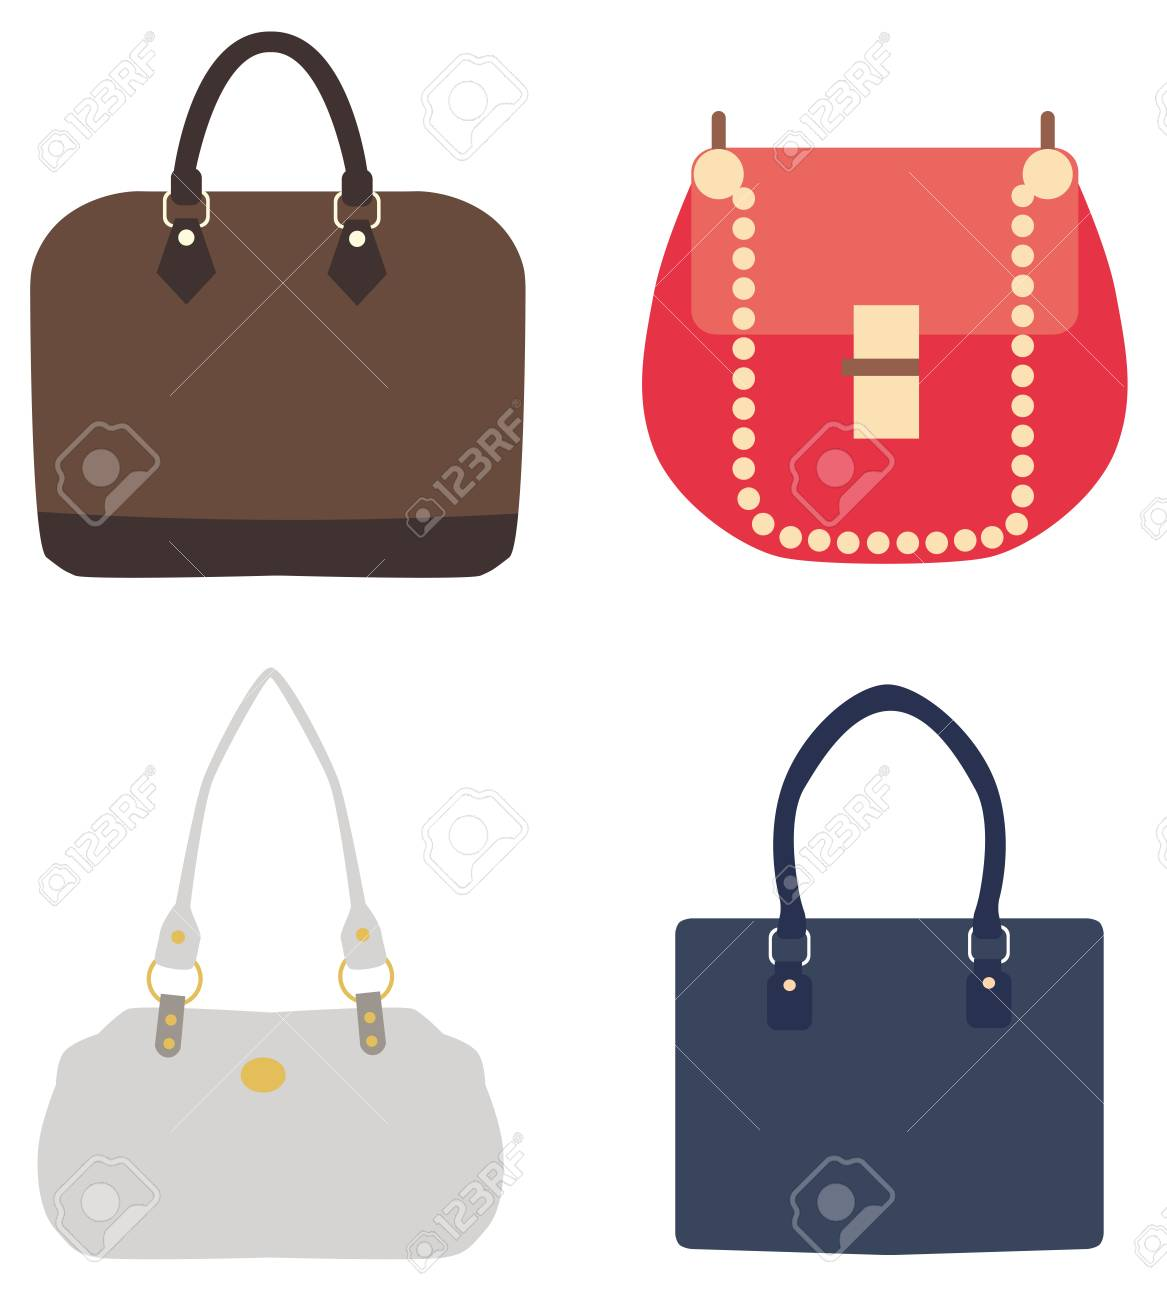 bc12ba509f Vector - Vector illustration of bags